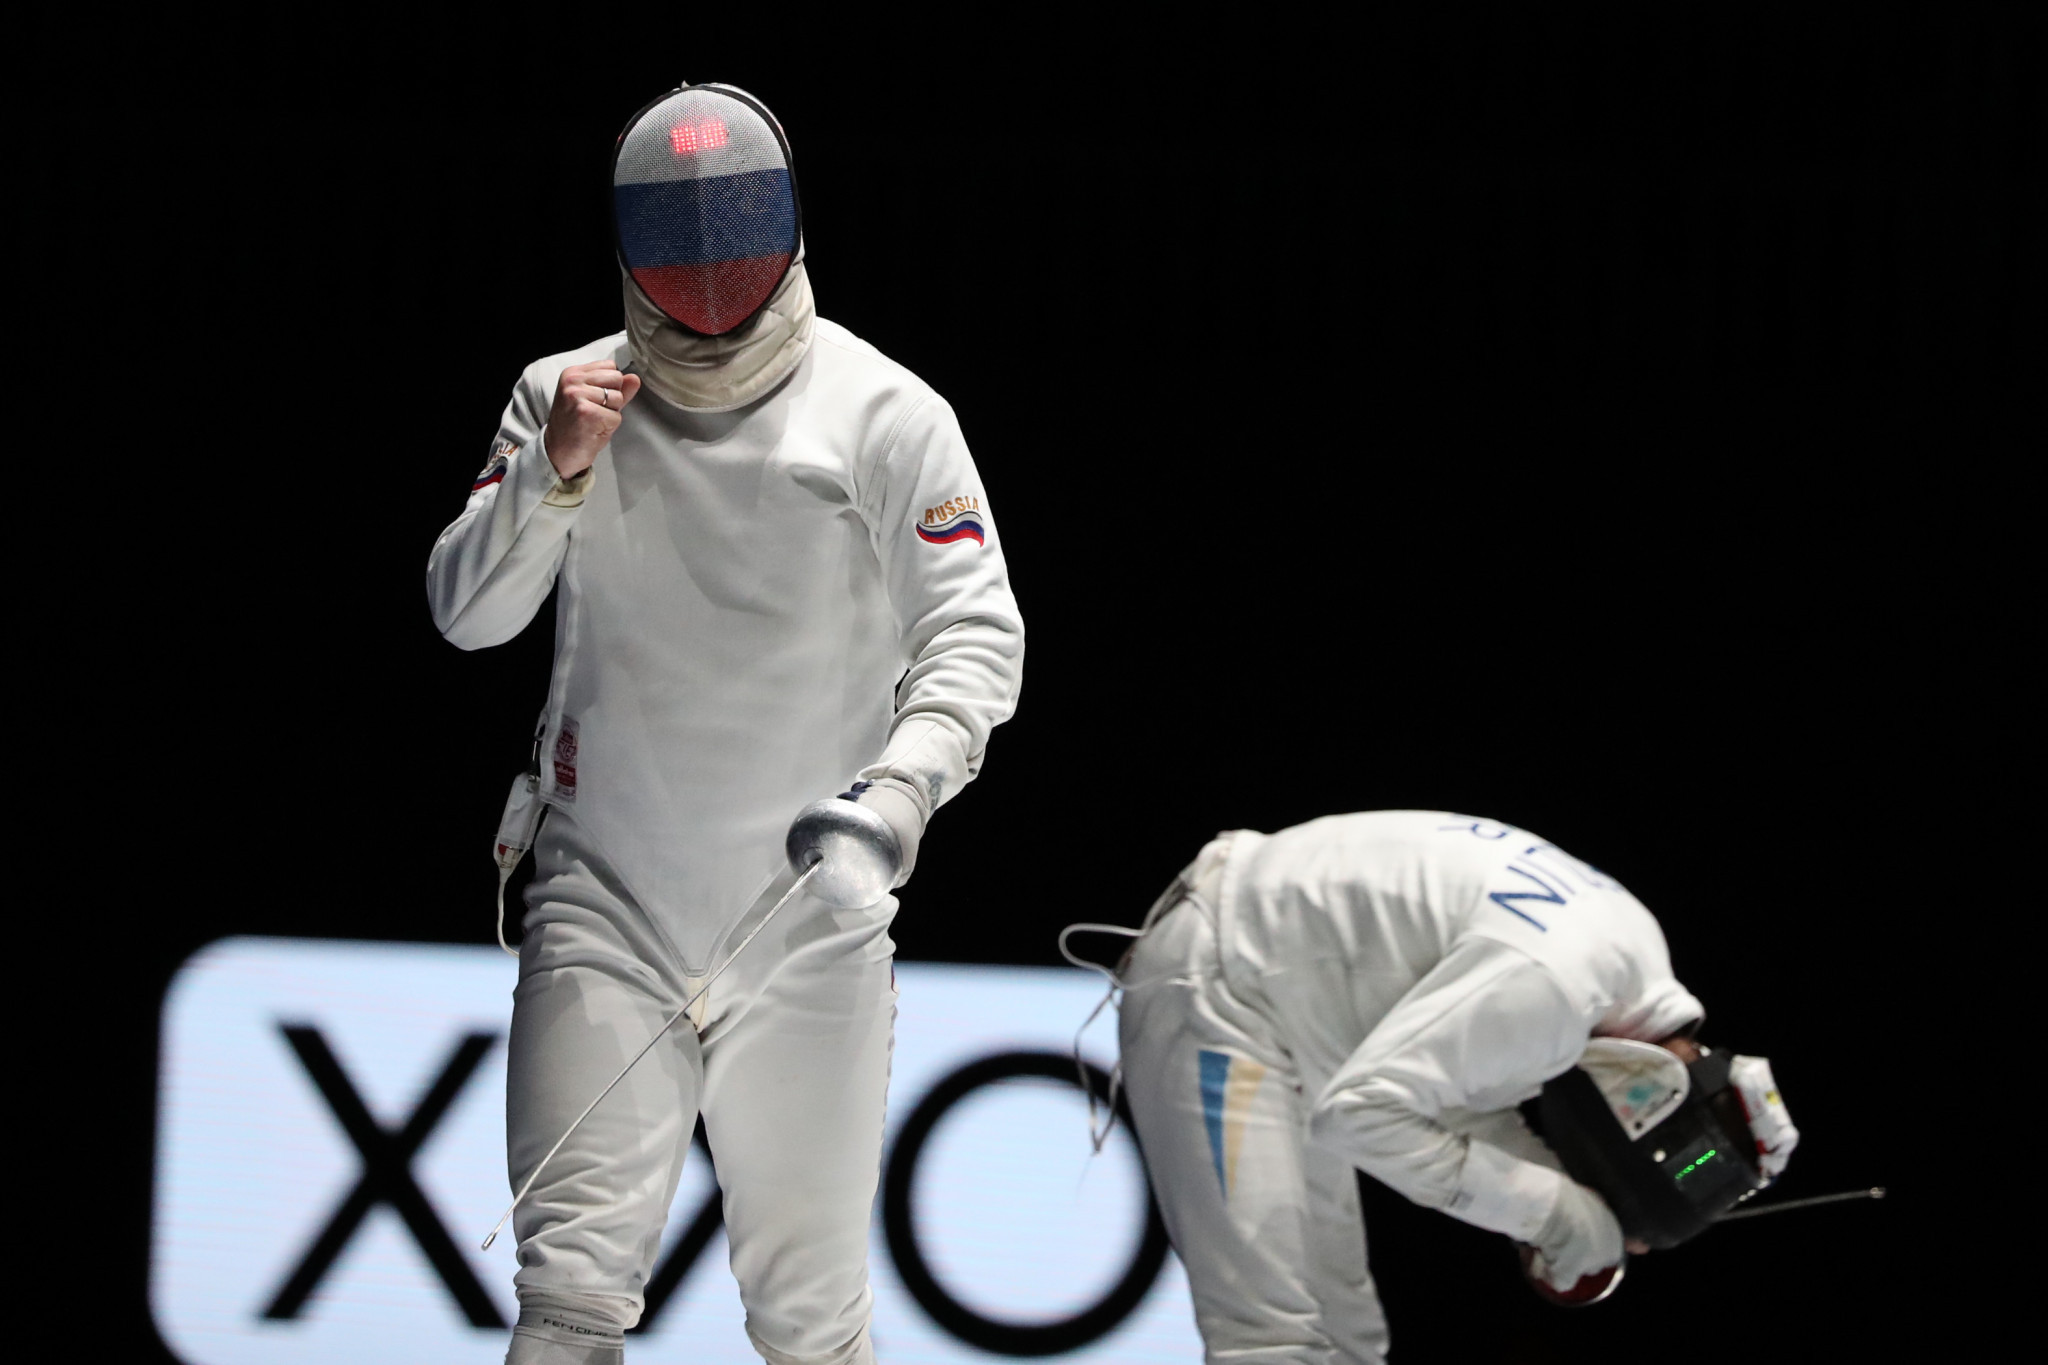 Top four seeds knocked out in opening rounds of men's Épée World Cup